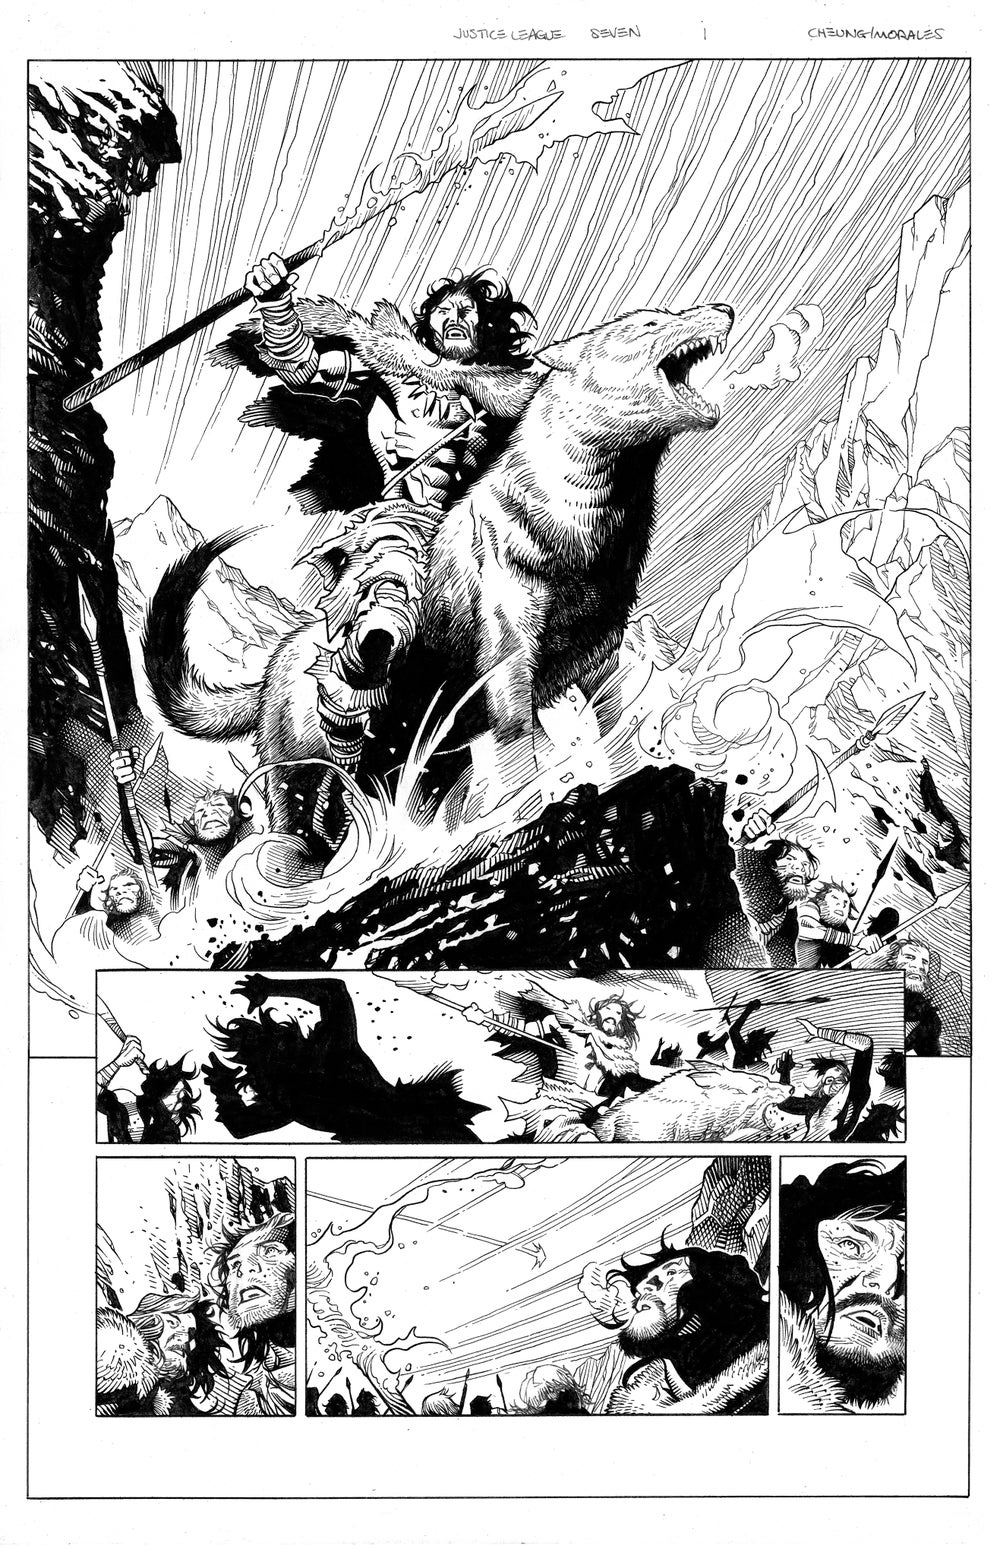 Image of JUSTICE LEAGUE #7 Page 01